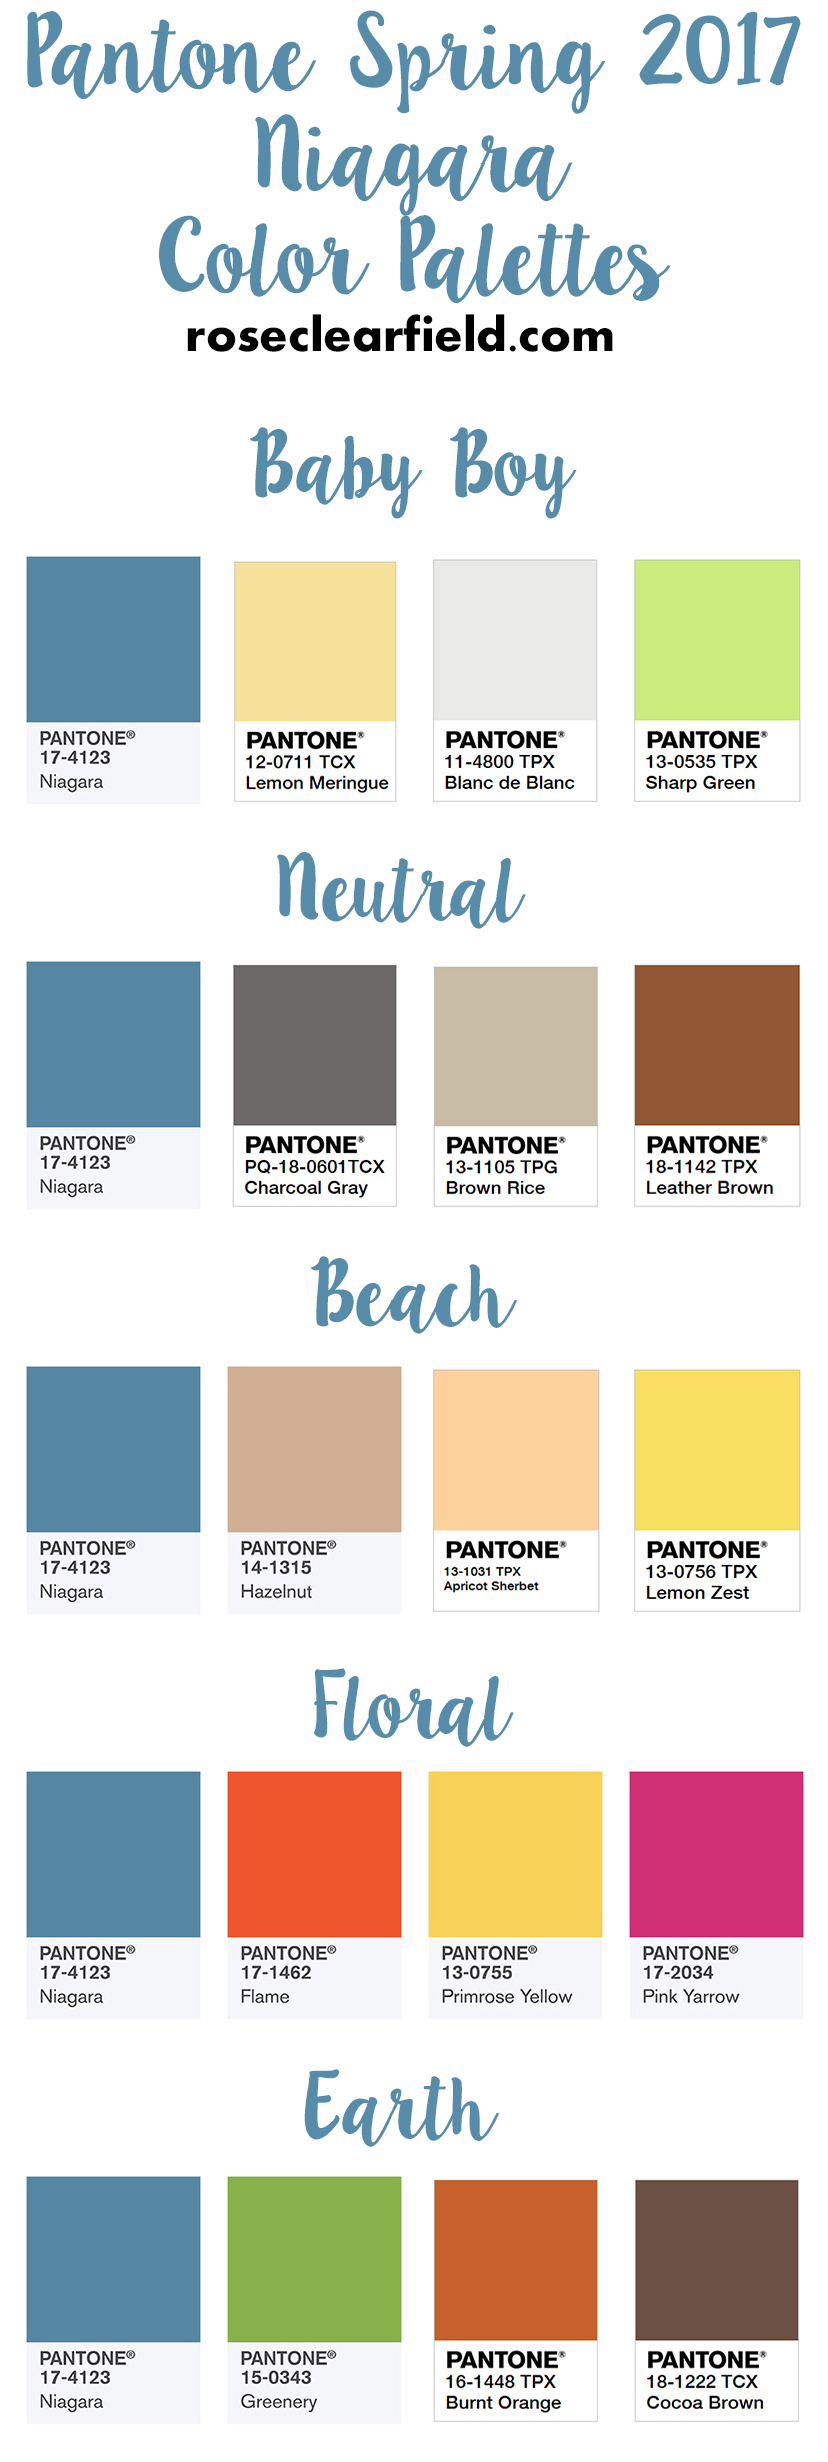 Pantone Spring 2017 Niagara Color Palettes   https://www.roseclearfield.com